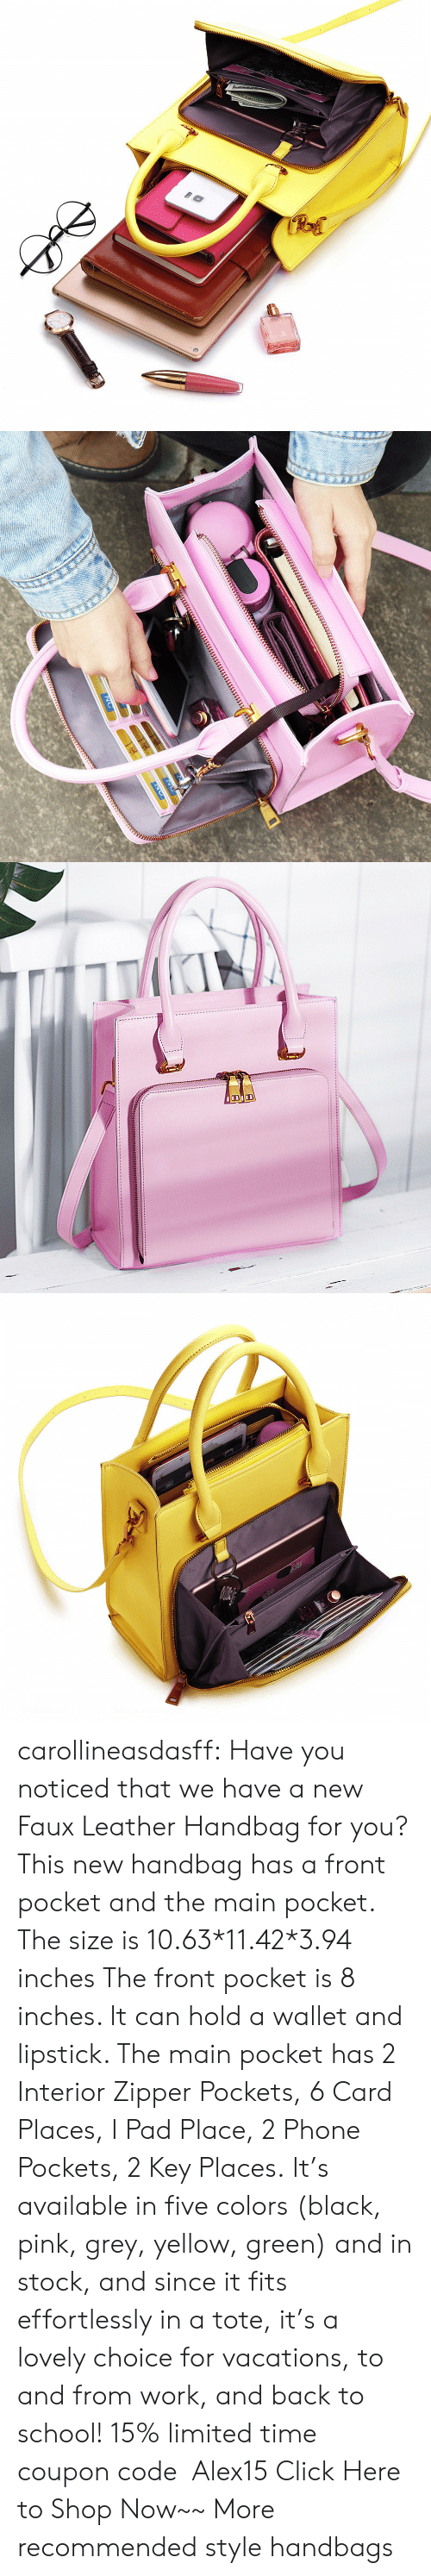 lipstick: RA carollineasdasff: Have you noticed that we have a new Faux Leather Handbag for you? This new handbag has a front pocket and the main pocket. The size is 10.63*11.42*3.94 inches The front pocket is 8 inches. It can hold a wallet and lipstick. The main pocket has 2 Interior Zipper Pockets, 6 Card Places, I Pad Place, 2 Phone Pockets, 2 Key Places. It's available in five colors (black, pink, grey, yellow, green) and in stock, and since it fits effortlessly in a tote, it's a lovely choice for vacations, to and from work, and back to school! 15% limited time coupon code:Alex15 Click Here to Shop Now~~ More recommended style handbags